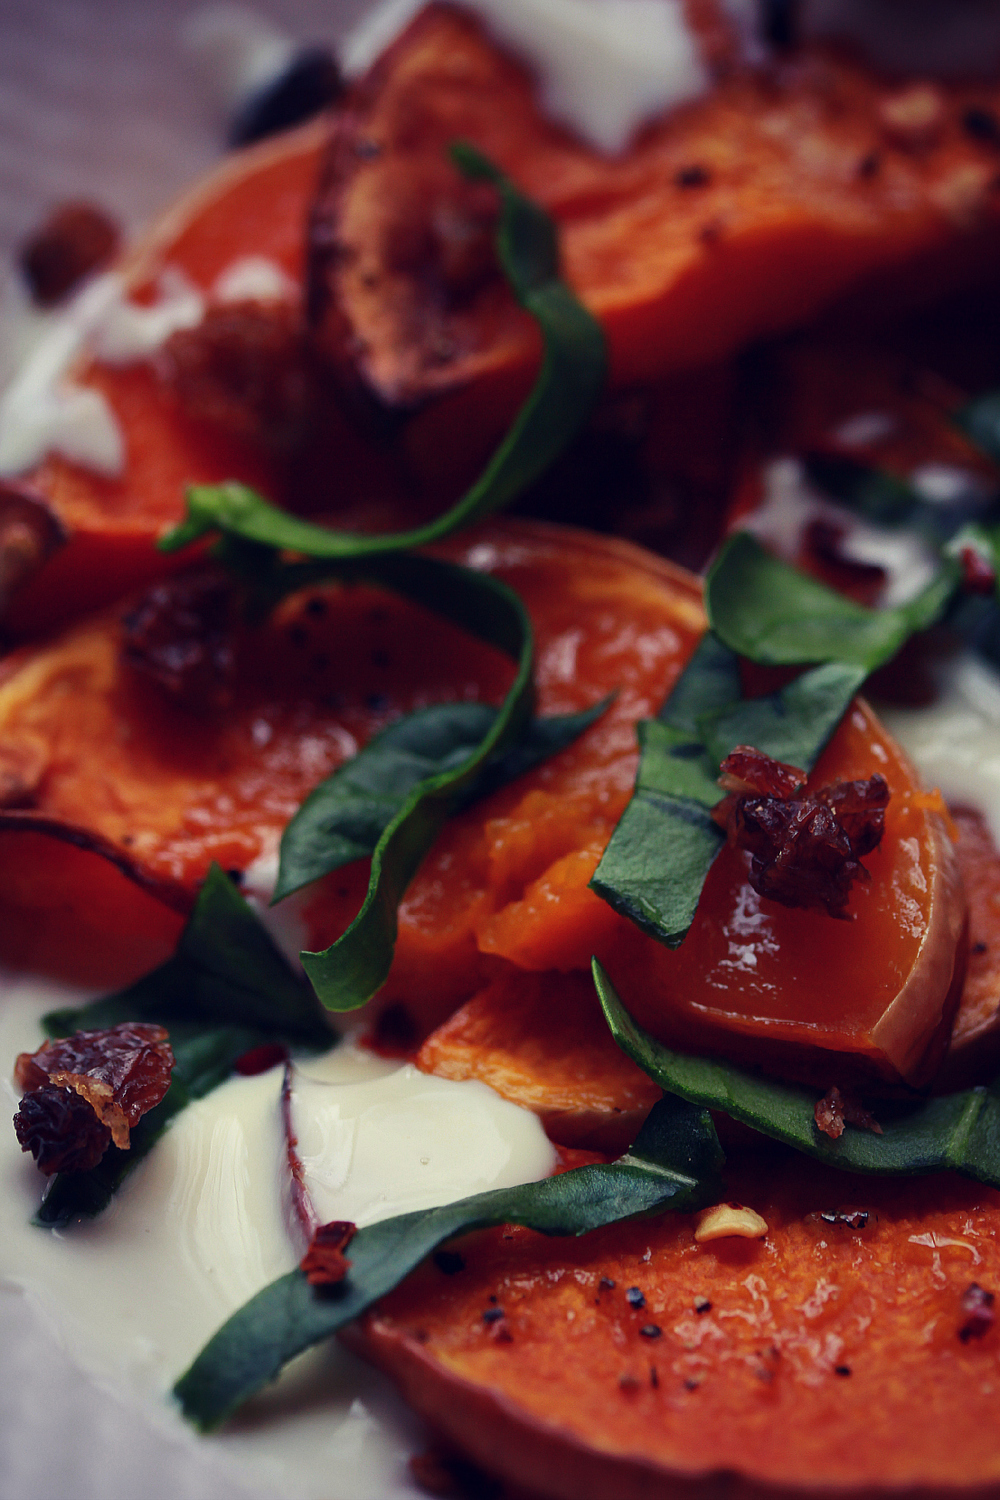 ©Roasted Butternut Squash Wedges by Dena T Bray